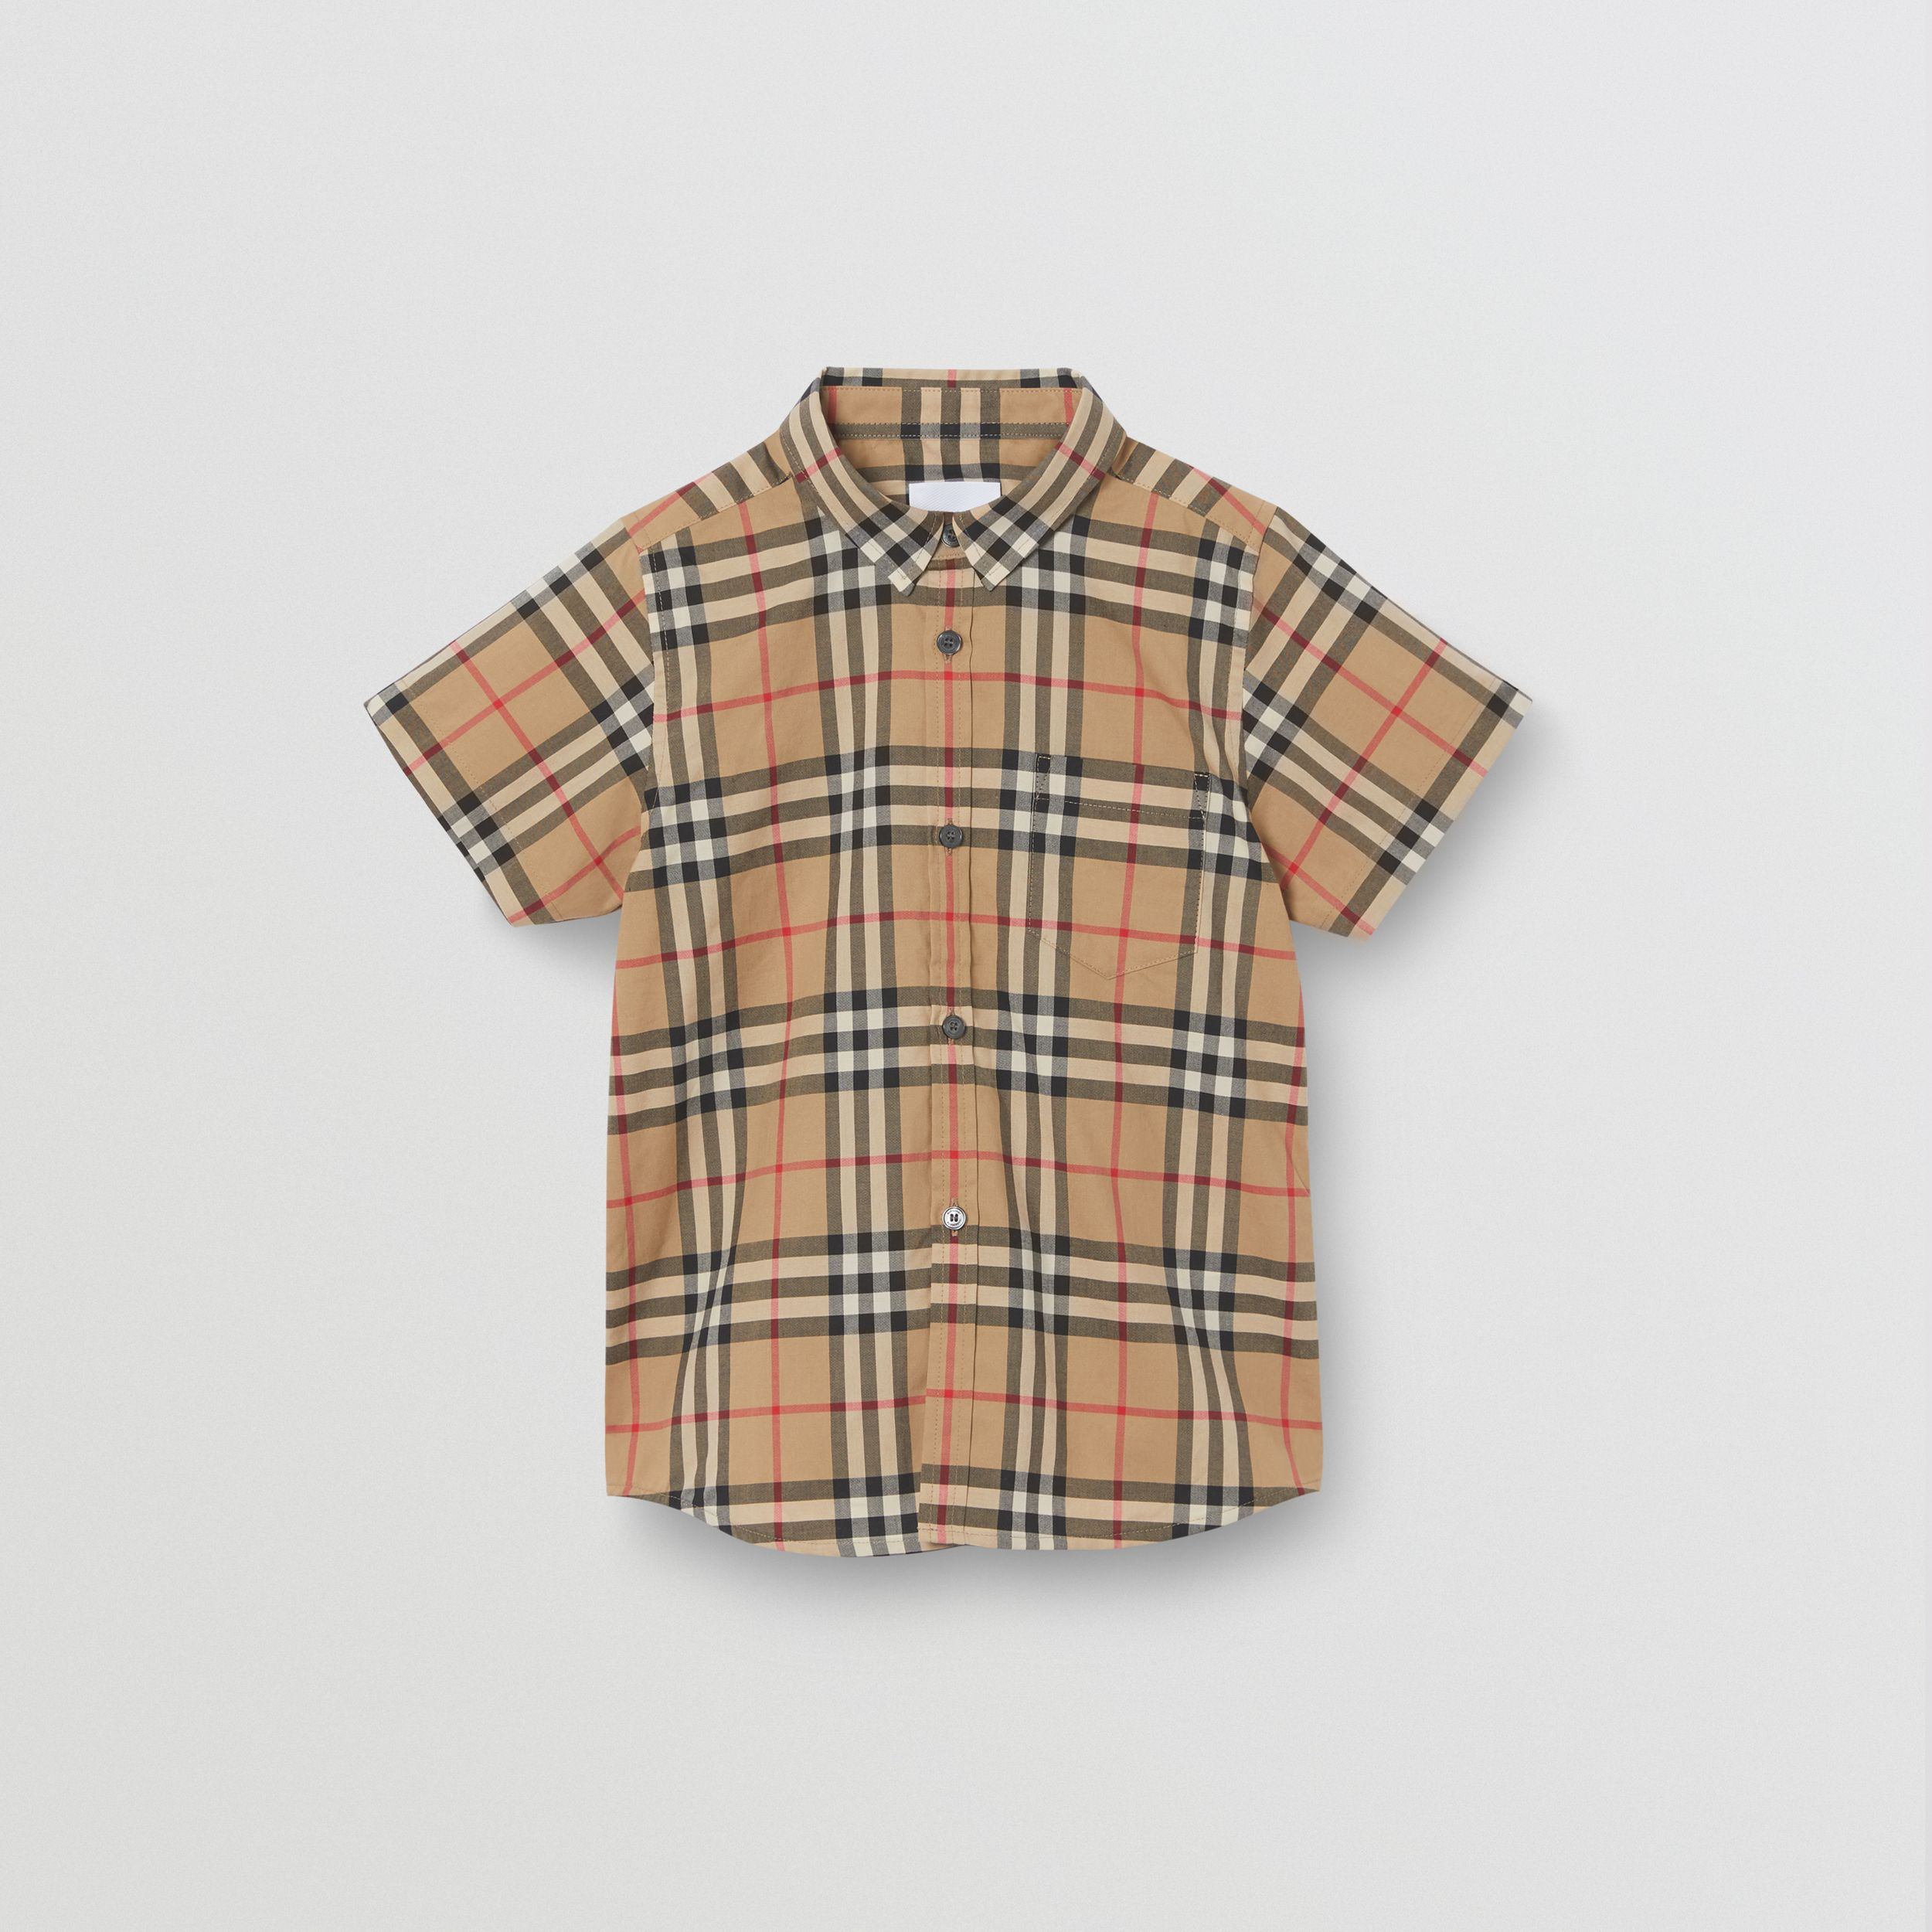 Short-sleeve Vintage Check Cotton Shirt in Archive Beige | Burberry - 1